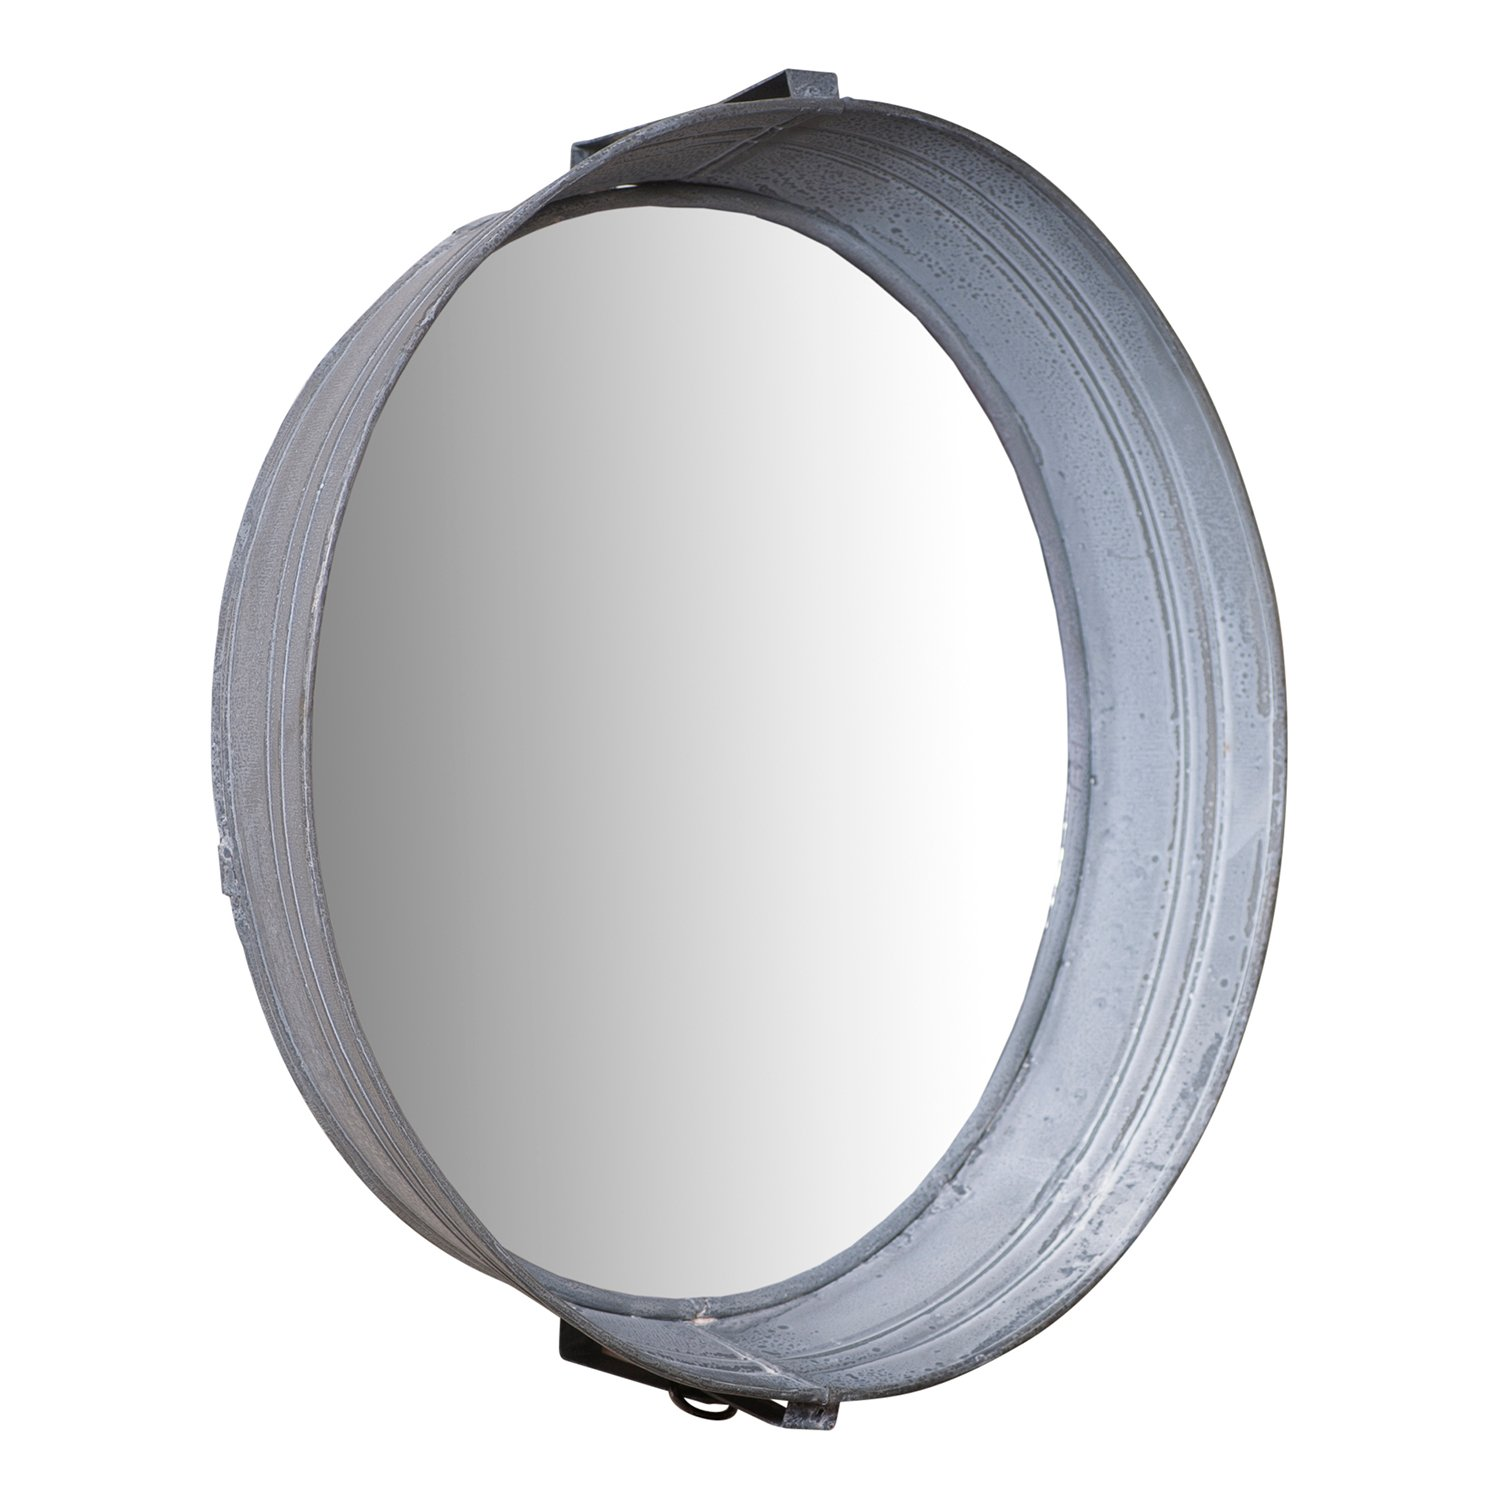 Irvin's Country Tinware Washtub Mirror in Weathered Zinc